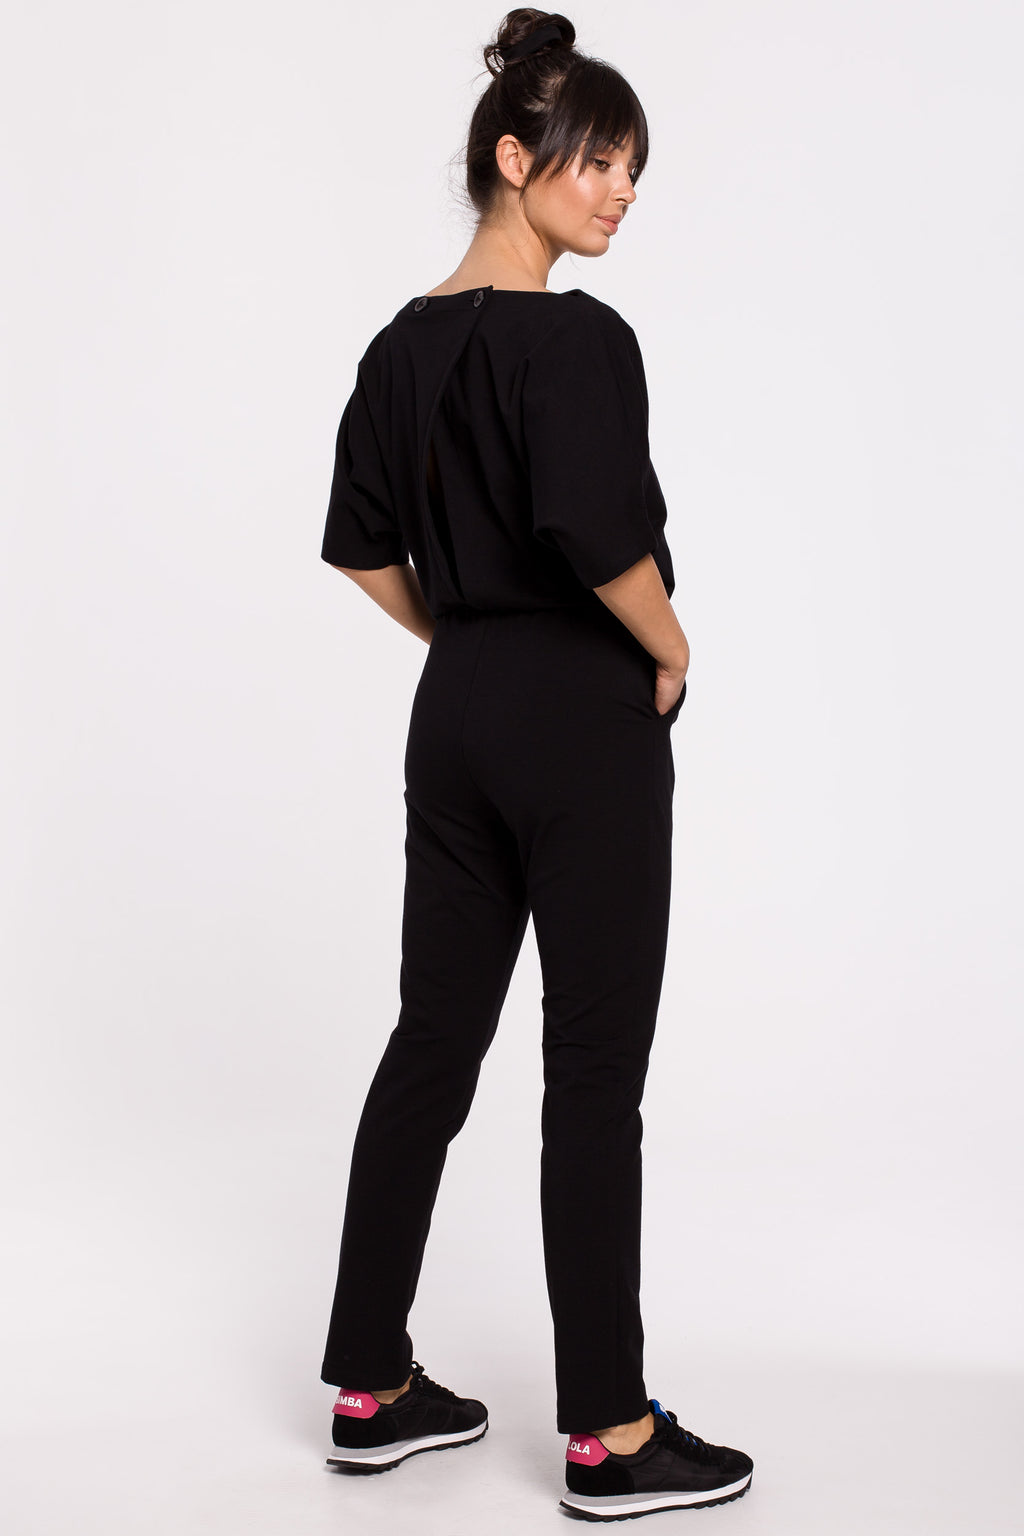 Black Jumpsuit With Kimono Top And Chino Trousers - So Chic Boutique